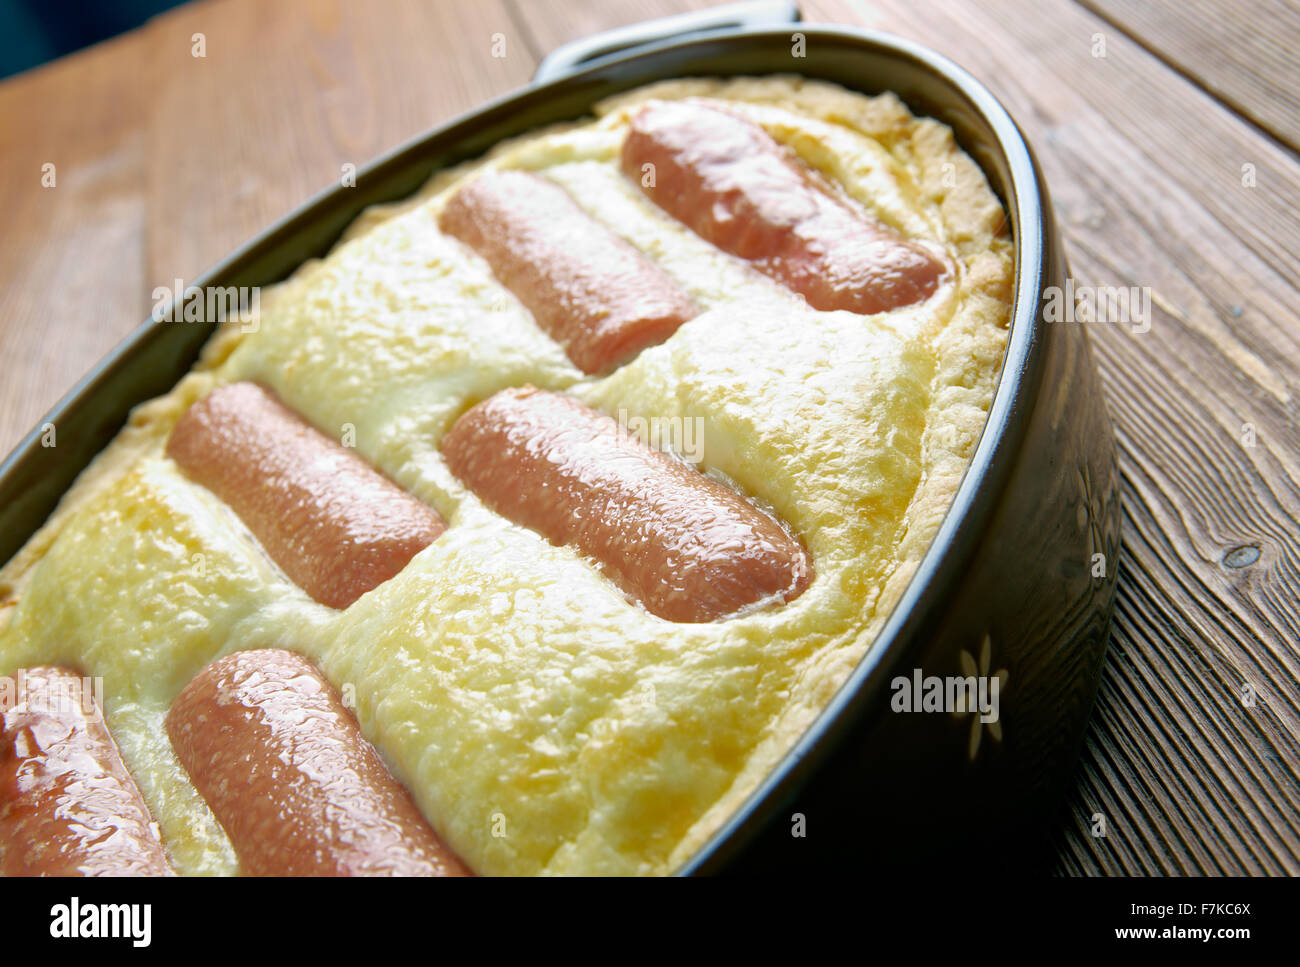 Toad in the hole -  traditional British dish consisting of sausages in Yorkshire pudding batter - Stock Image